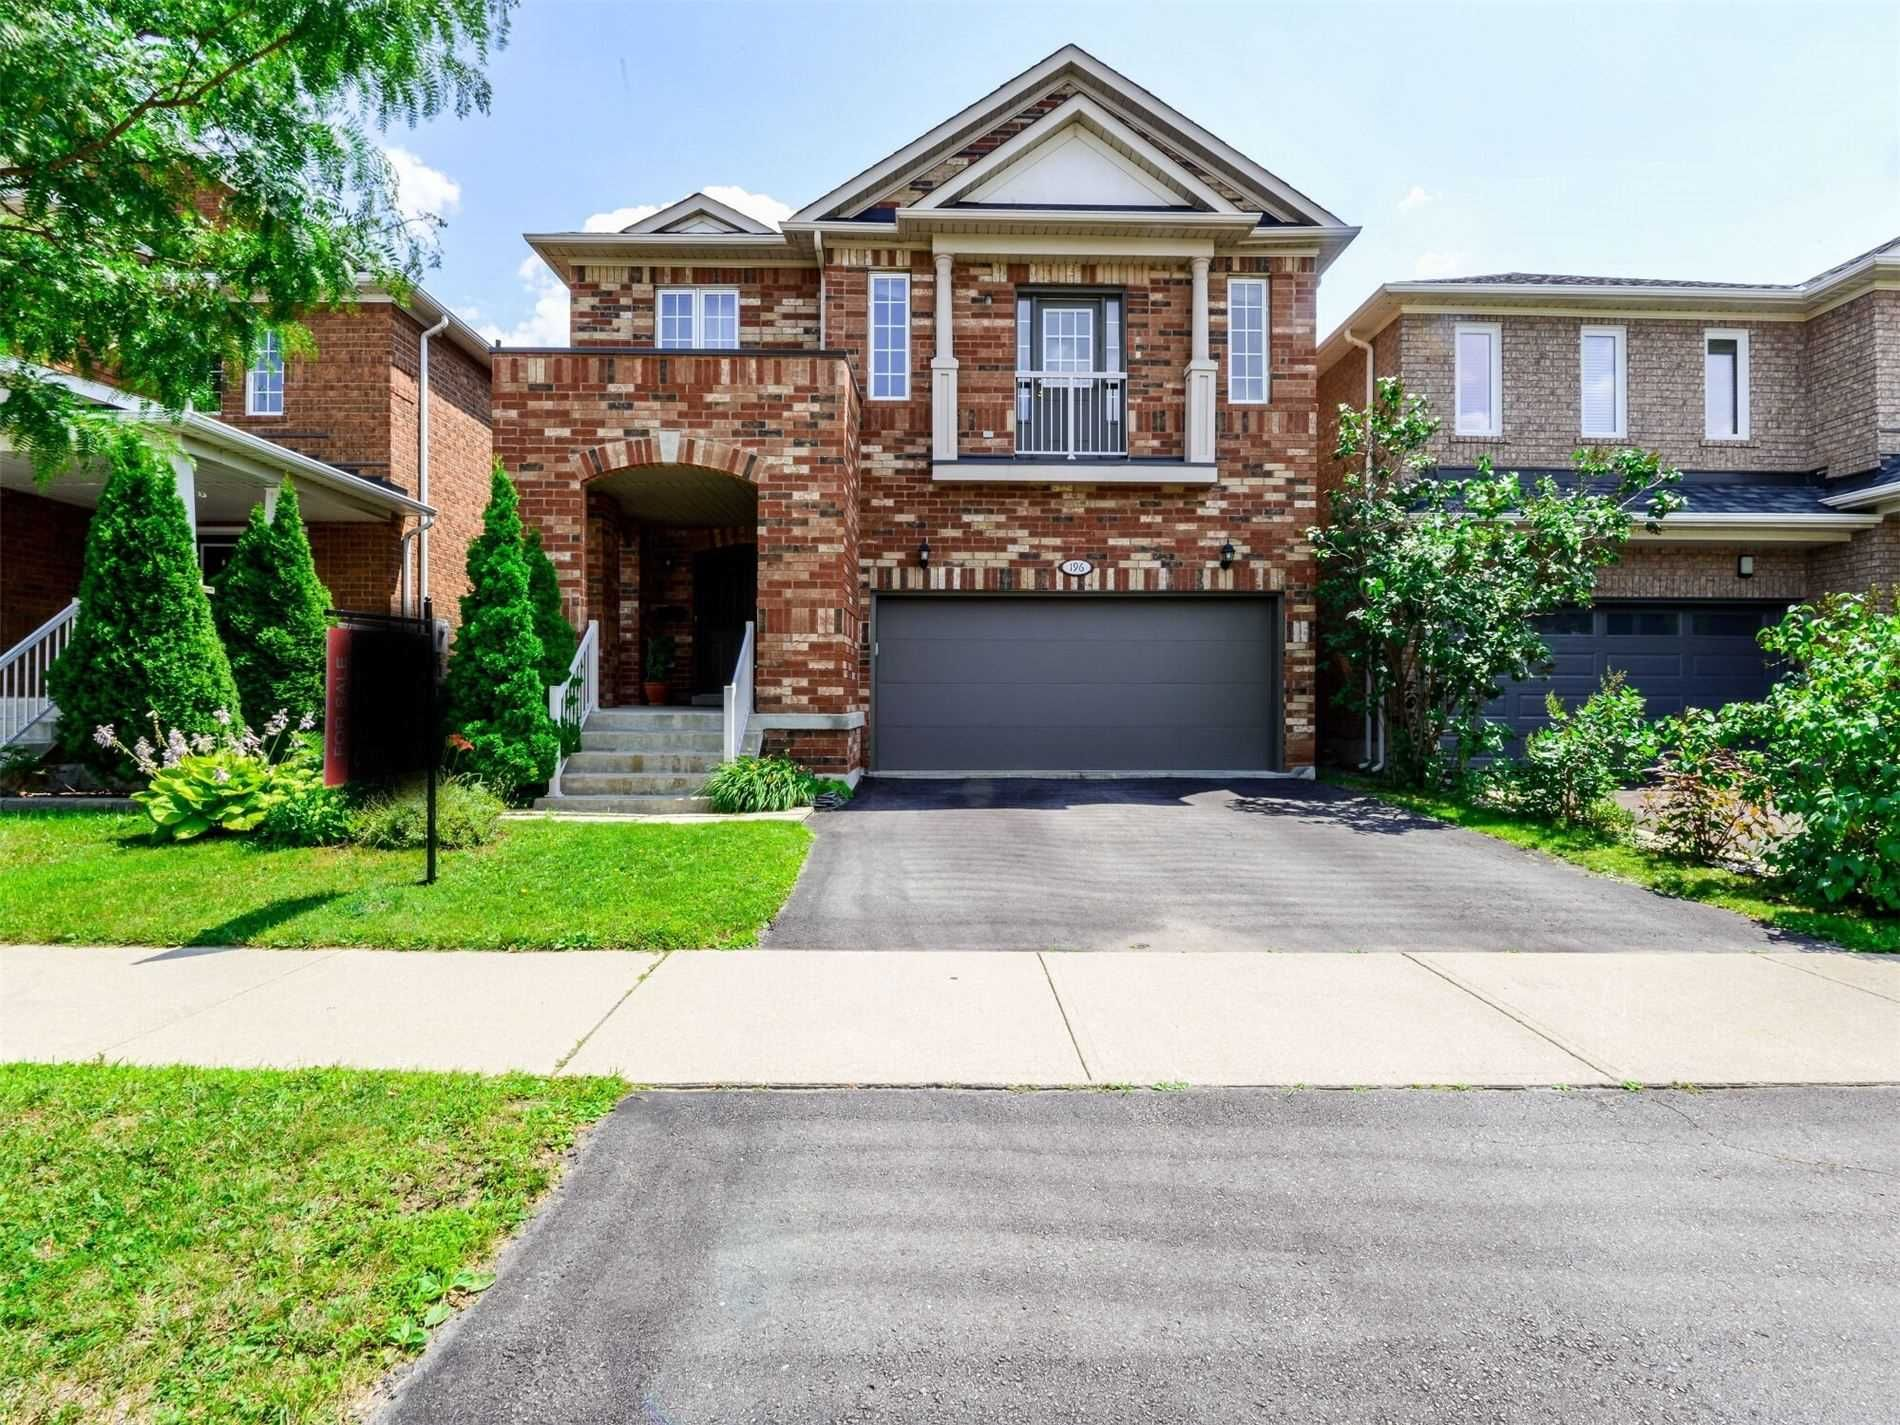 Main Photo: 196 Featherstone Road in Milton: Dempsey House (2-Storey) for sale : MLS®# W5321164